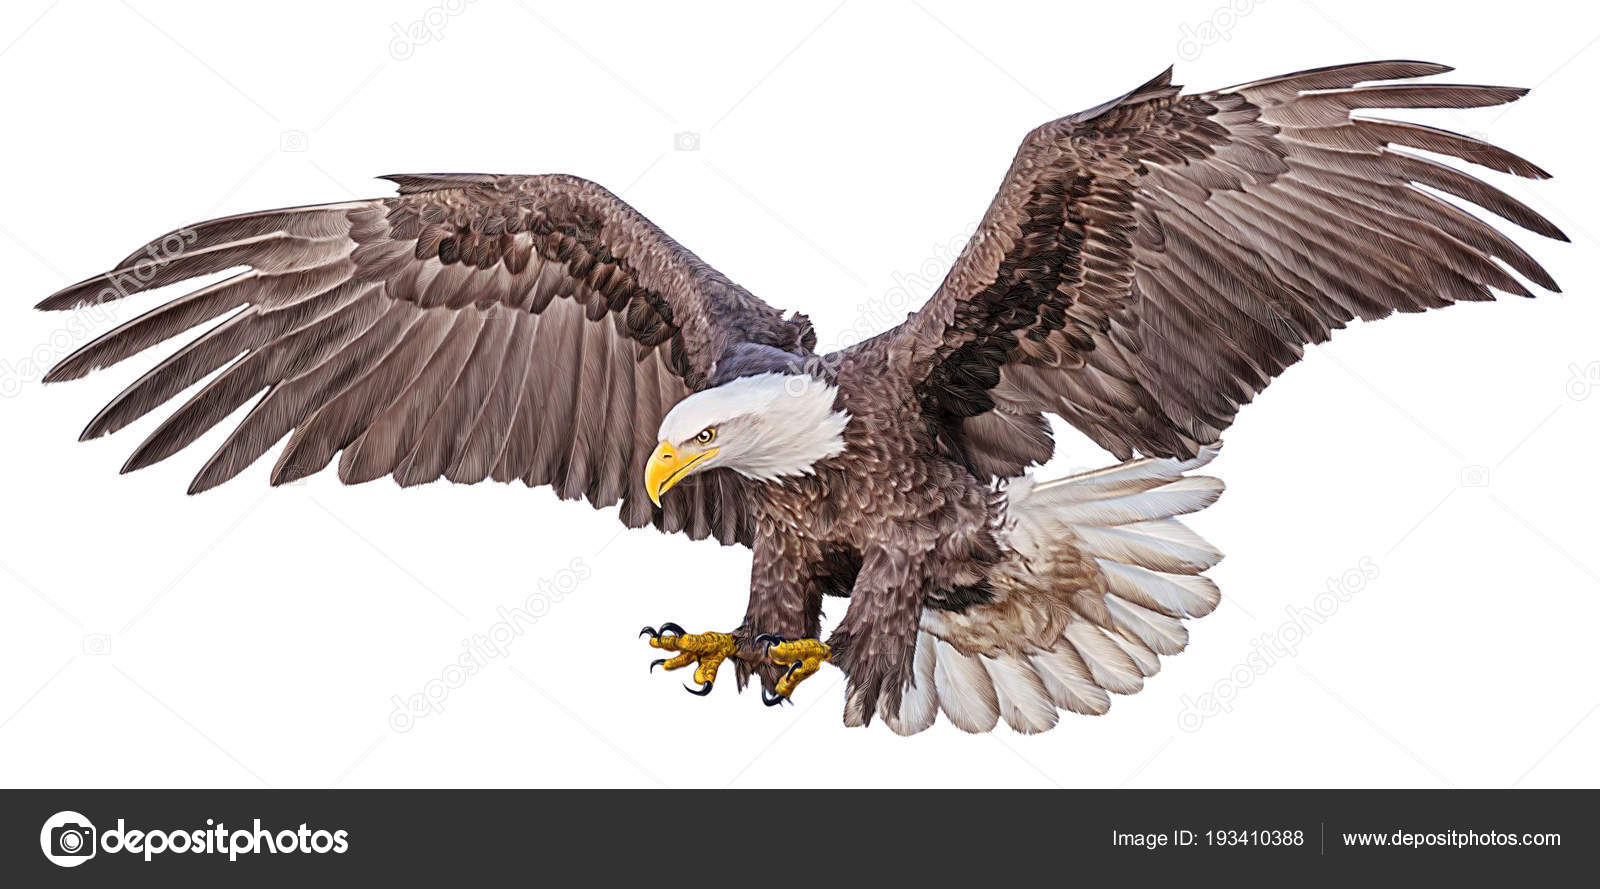 Bald eagle flying swoop hand draw and paint color on white background illustration stock image